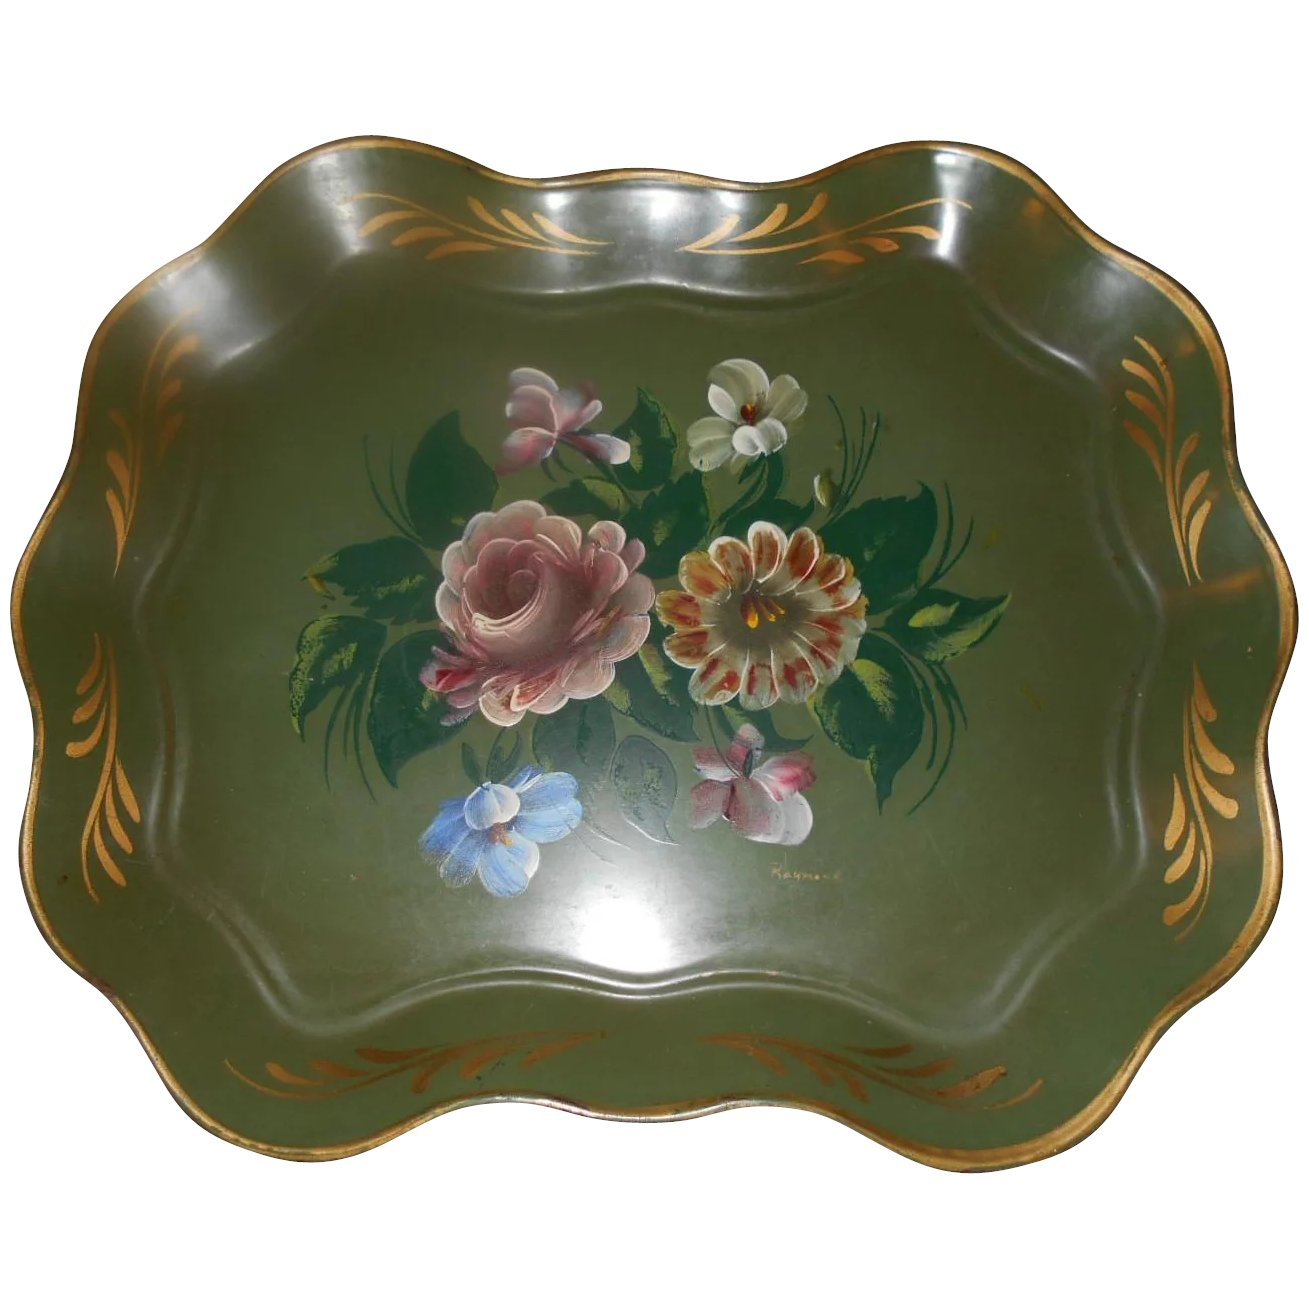 Wonderful Vintage Hand Painted Toleware Metal Serving Tray Floral Victoria S Purrrrfect Treasures Ruby Lane